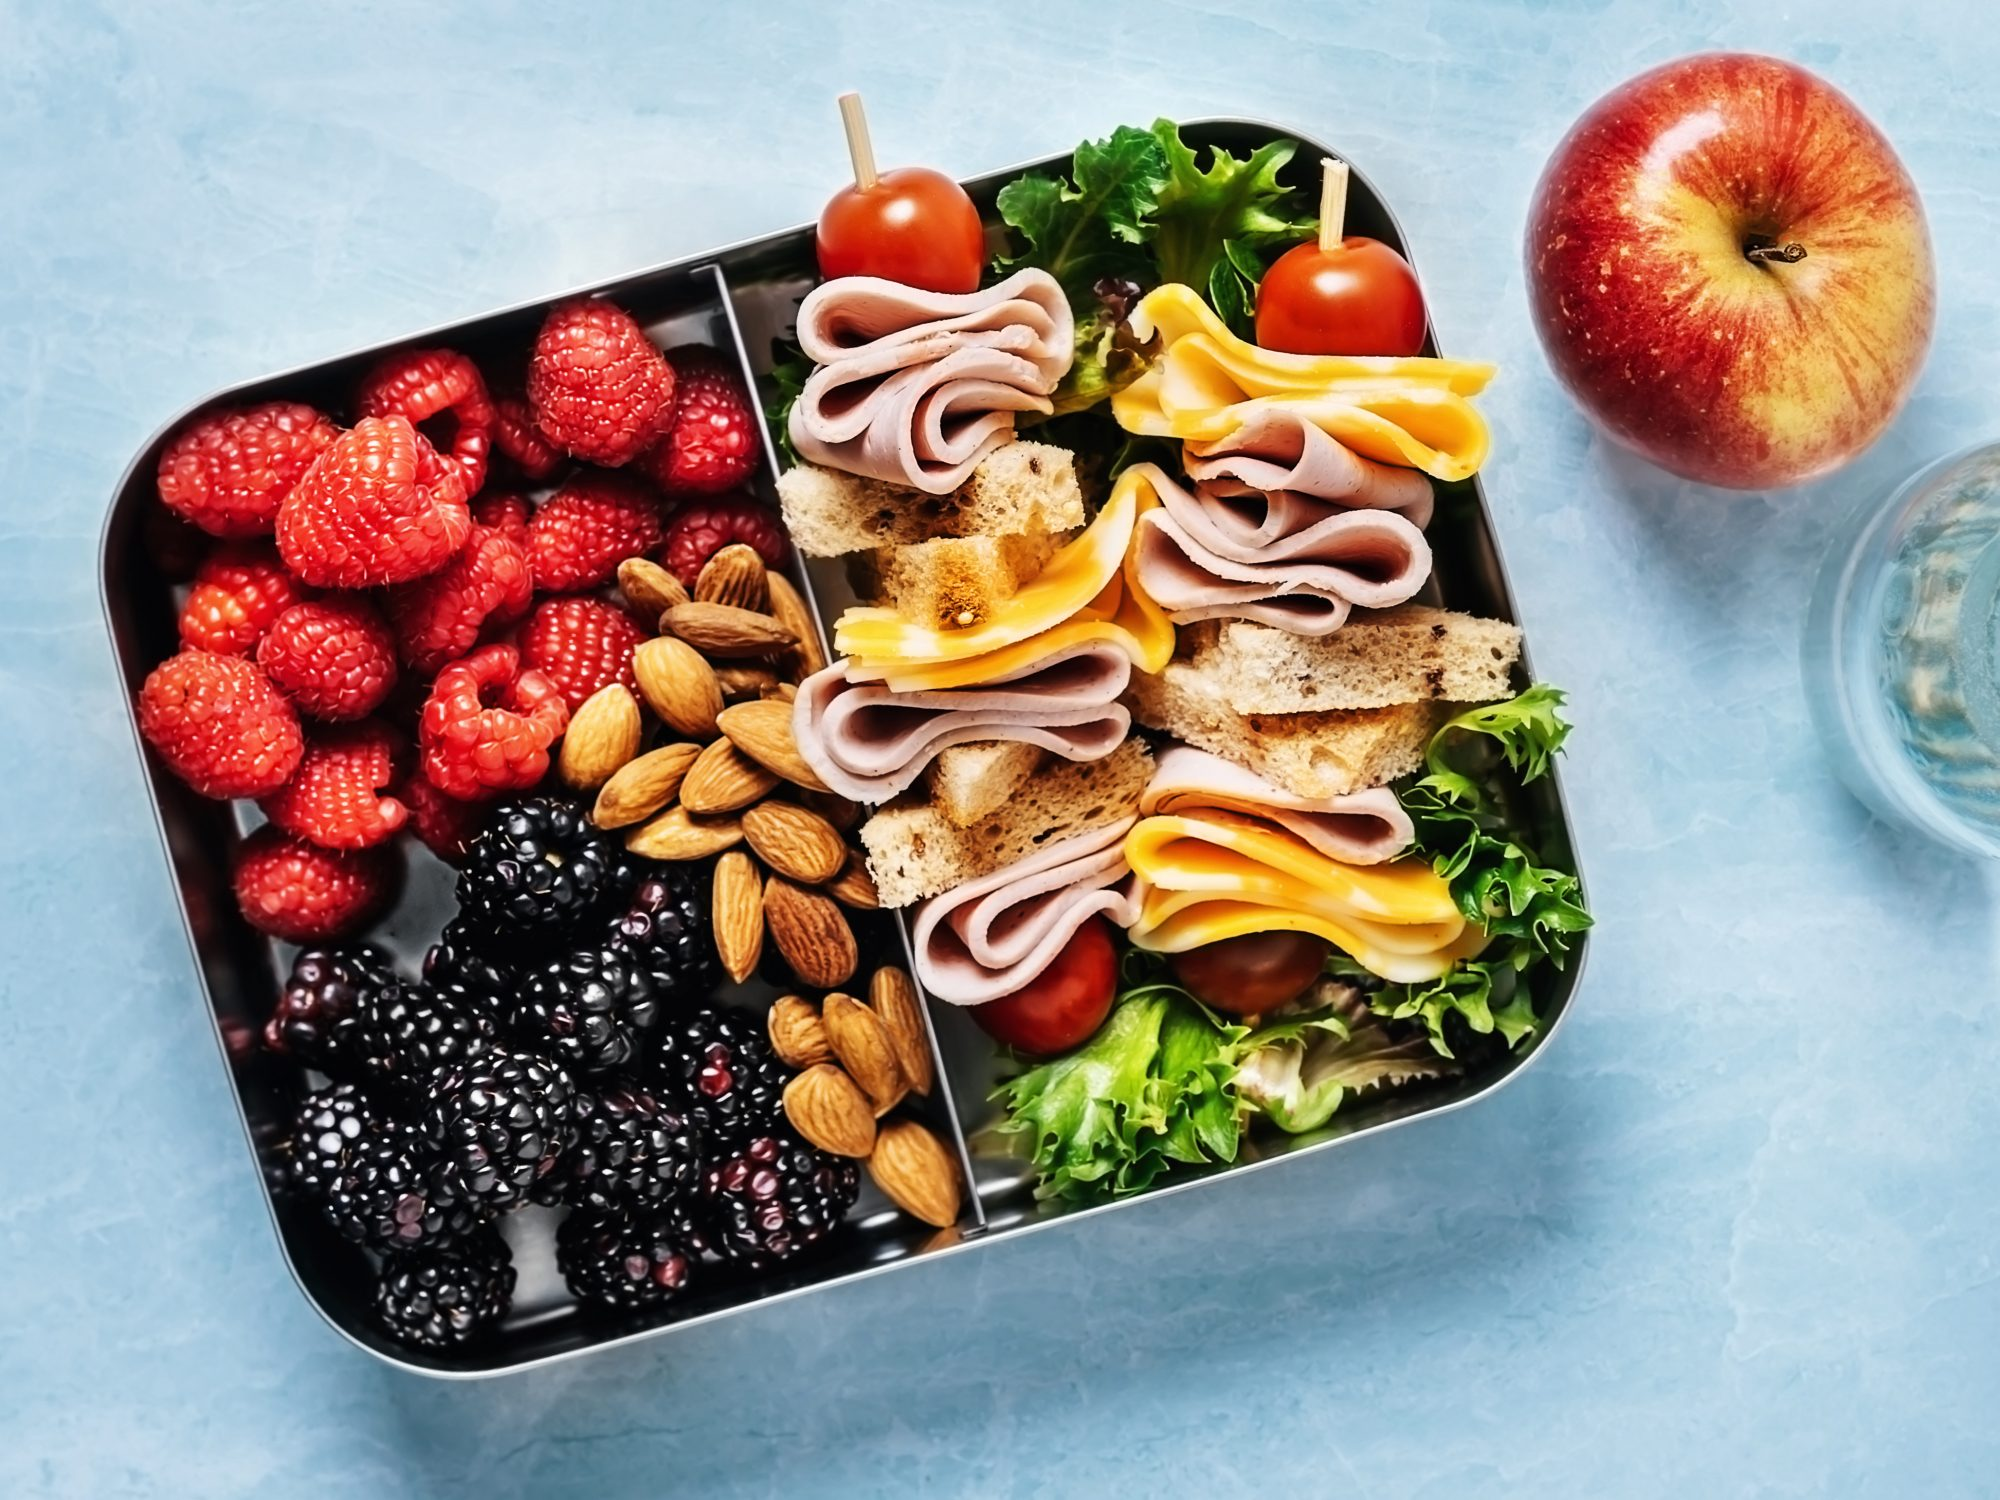 lunchbox filled with berries and a skewer style sandwich